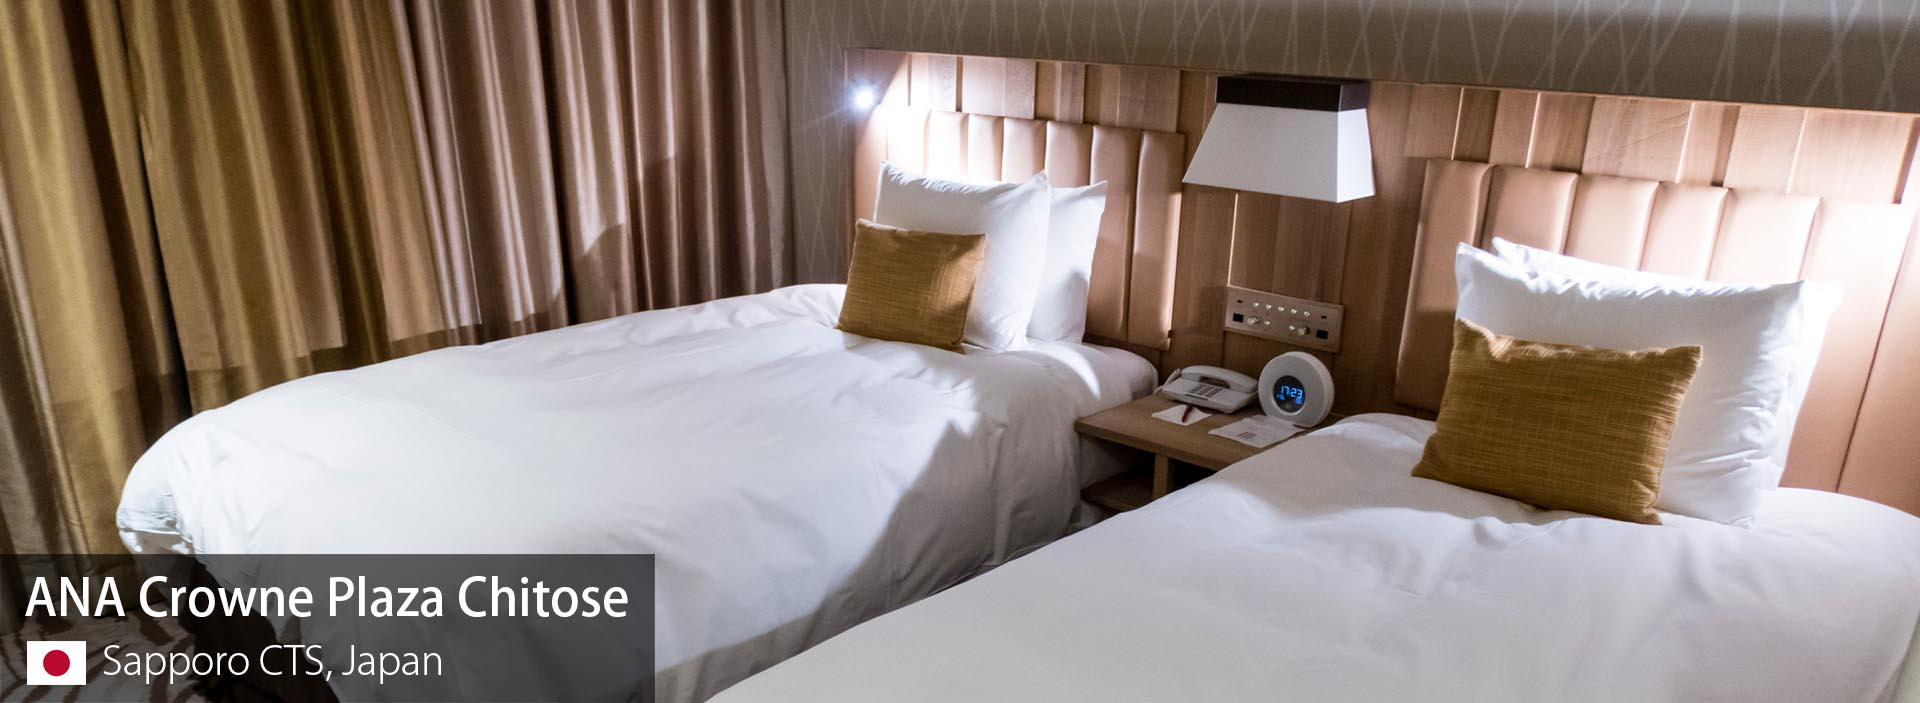 ANA Crowne Plaza Hotel Chitose Review